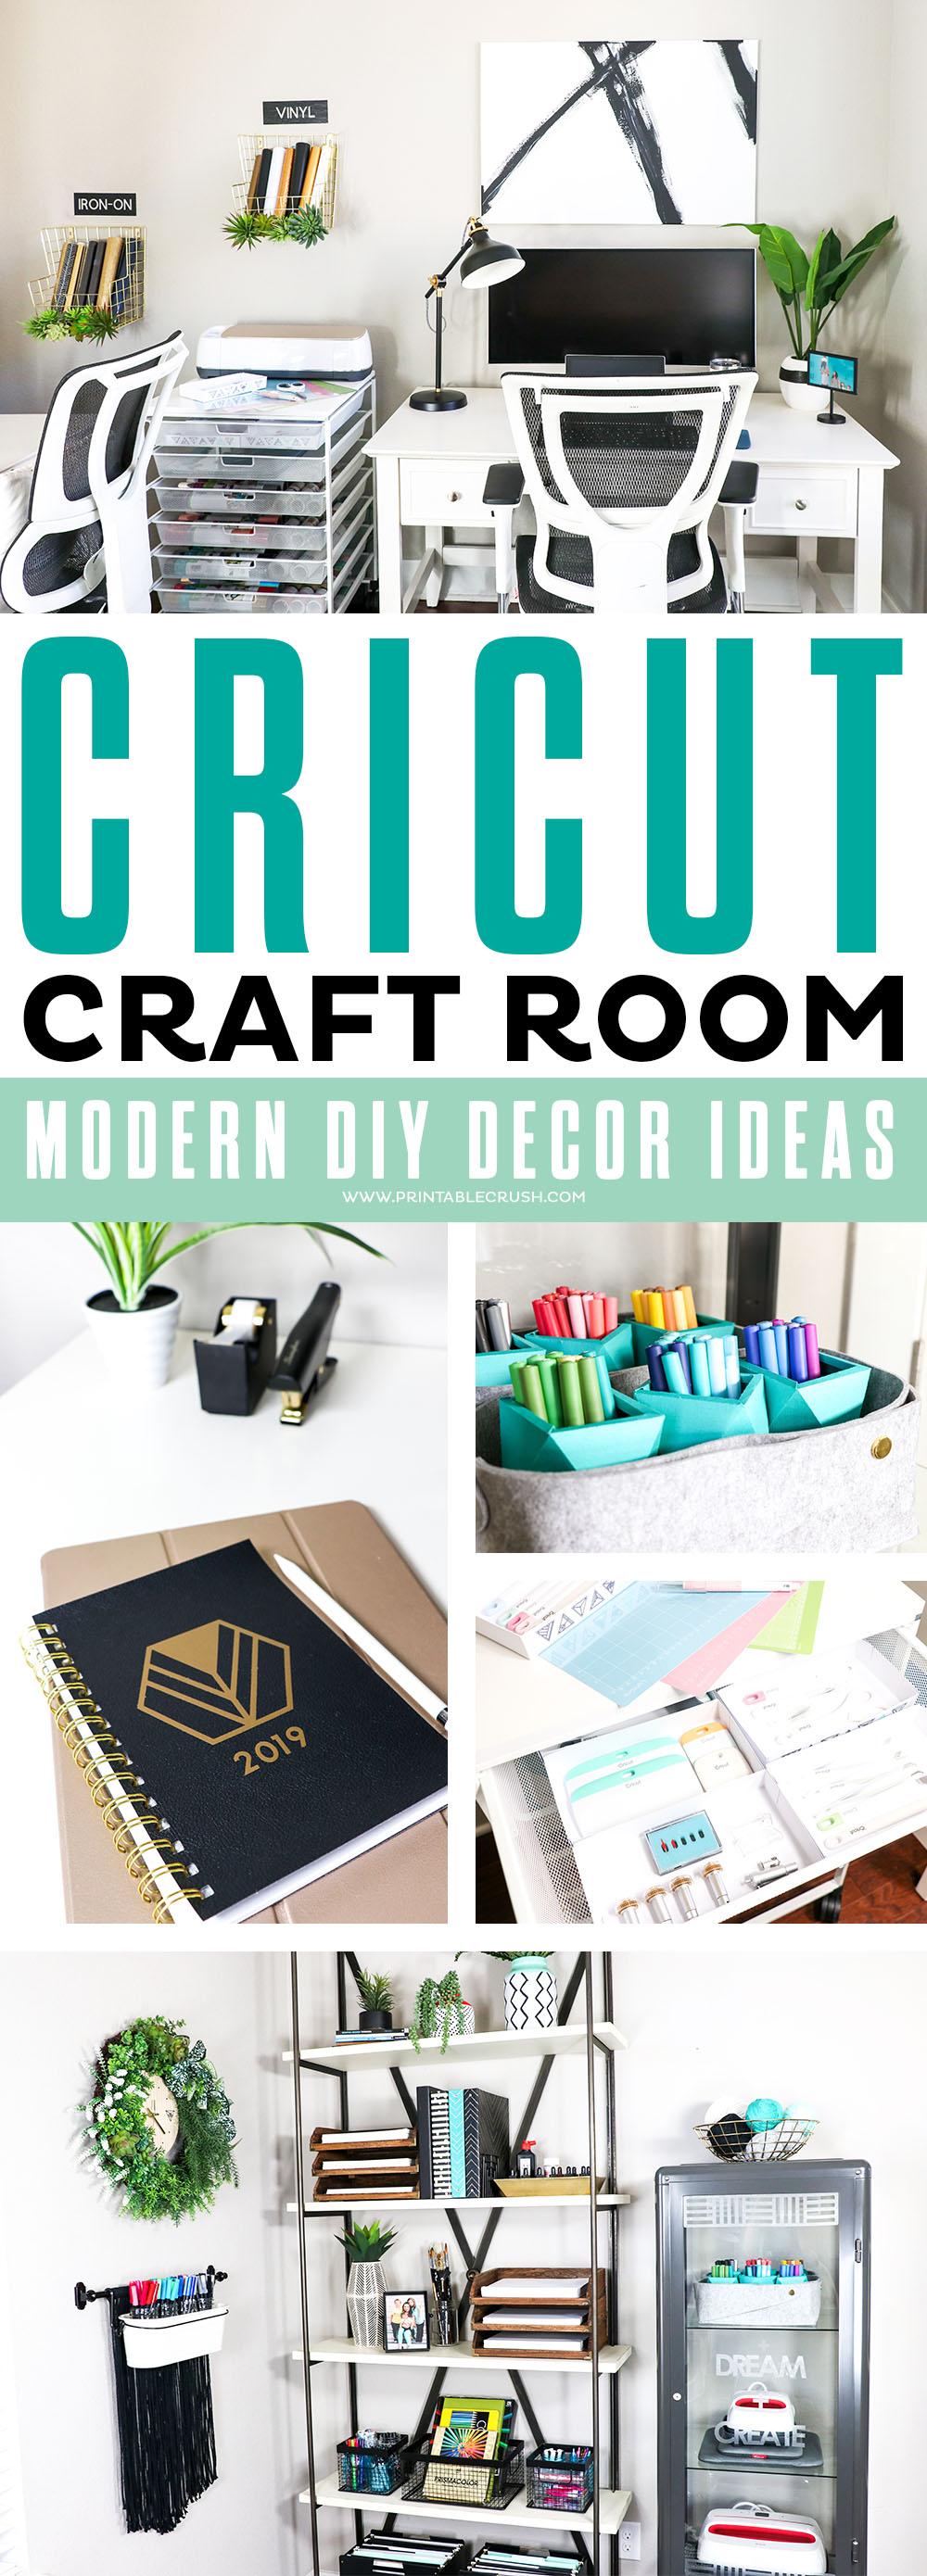 Check out these beautiful Home Office and Cricut Craft Room DIY Decor Ideas!